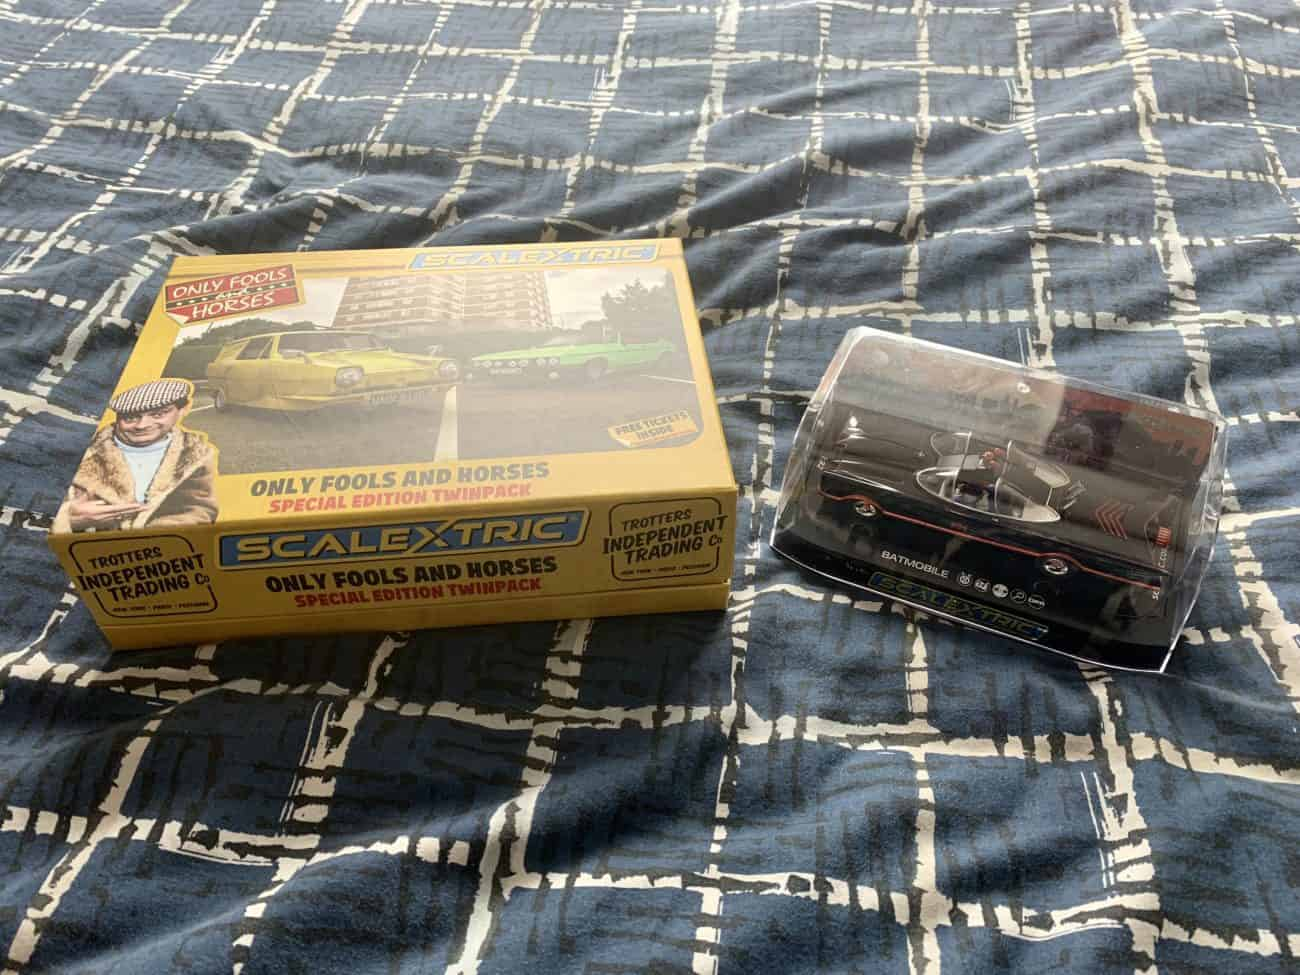 Classic Batmobile and Only Fools and Horses Reliant Robin Scalextric models lead the pack for Father's Day gifts in 2021!